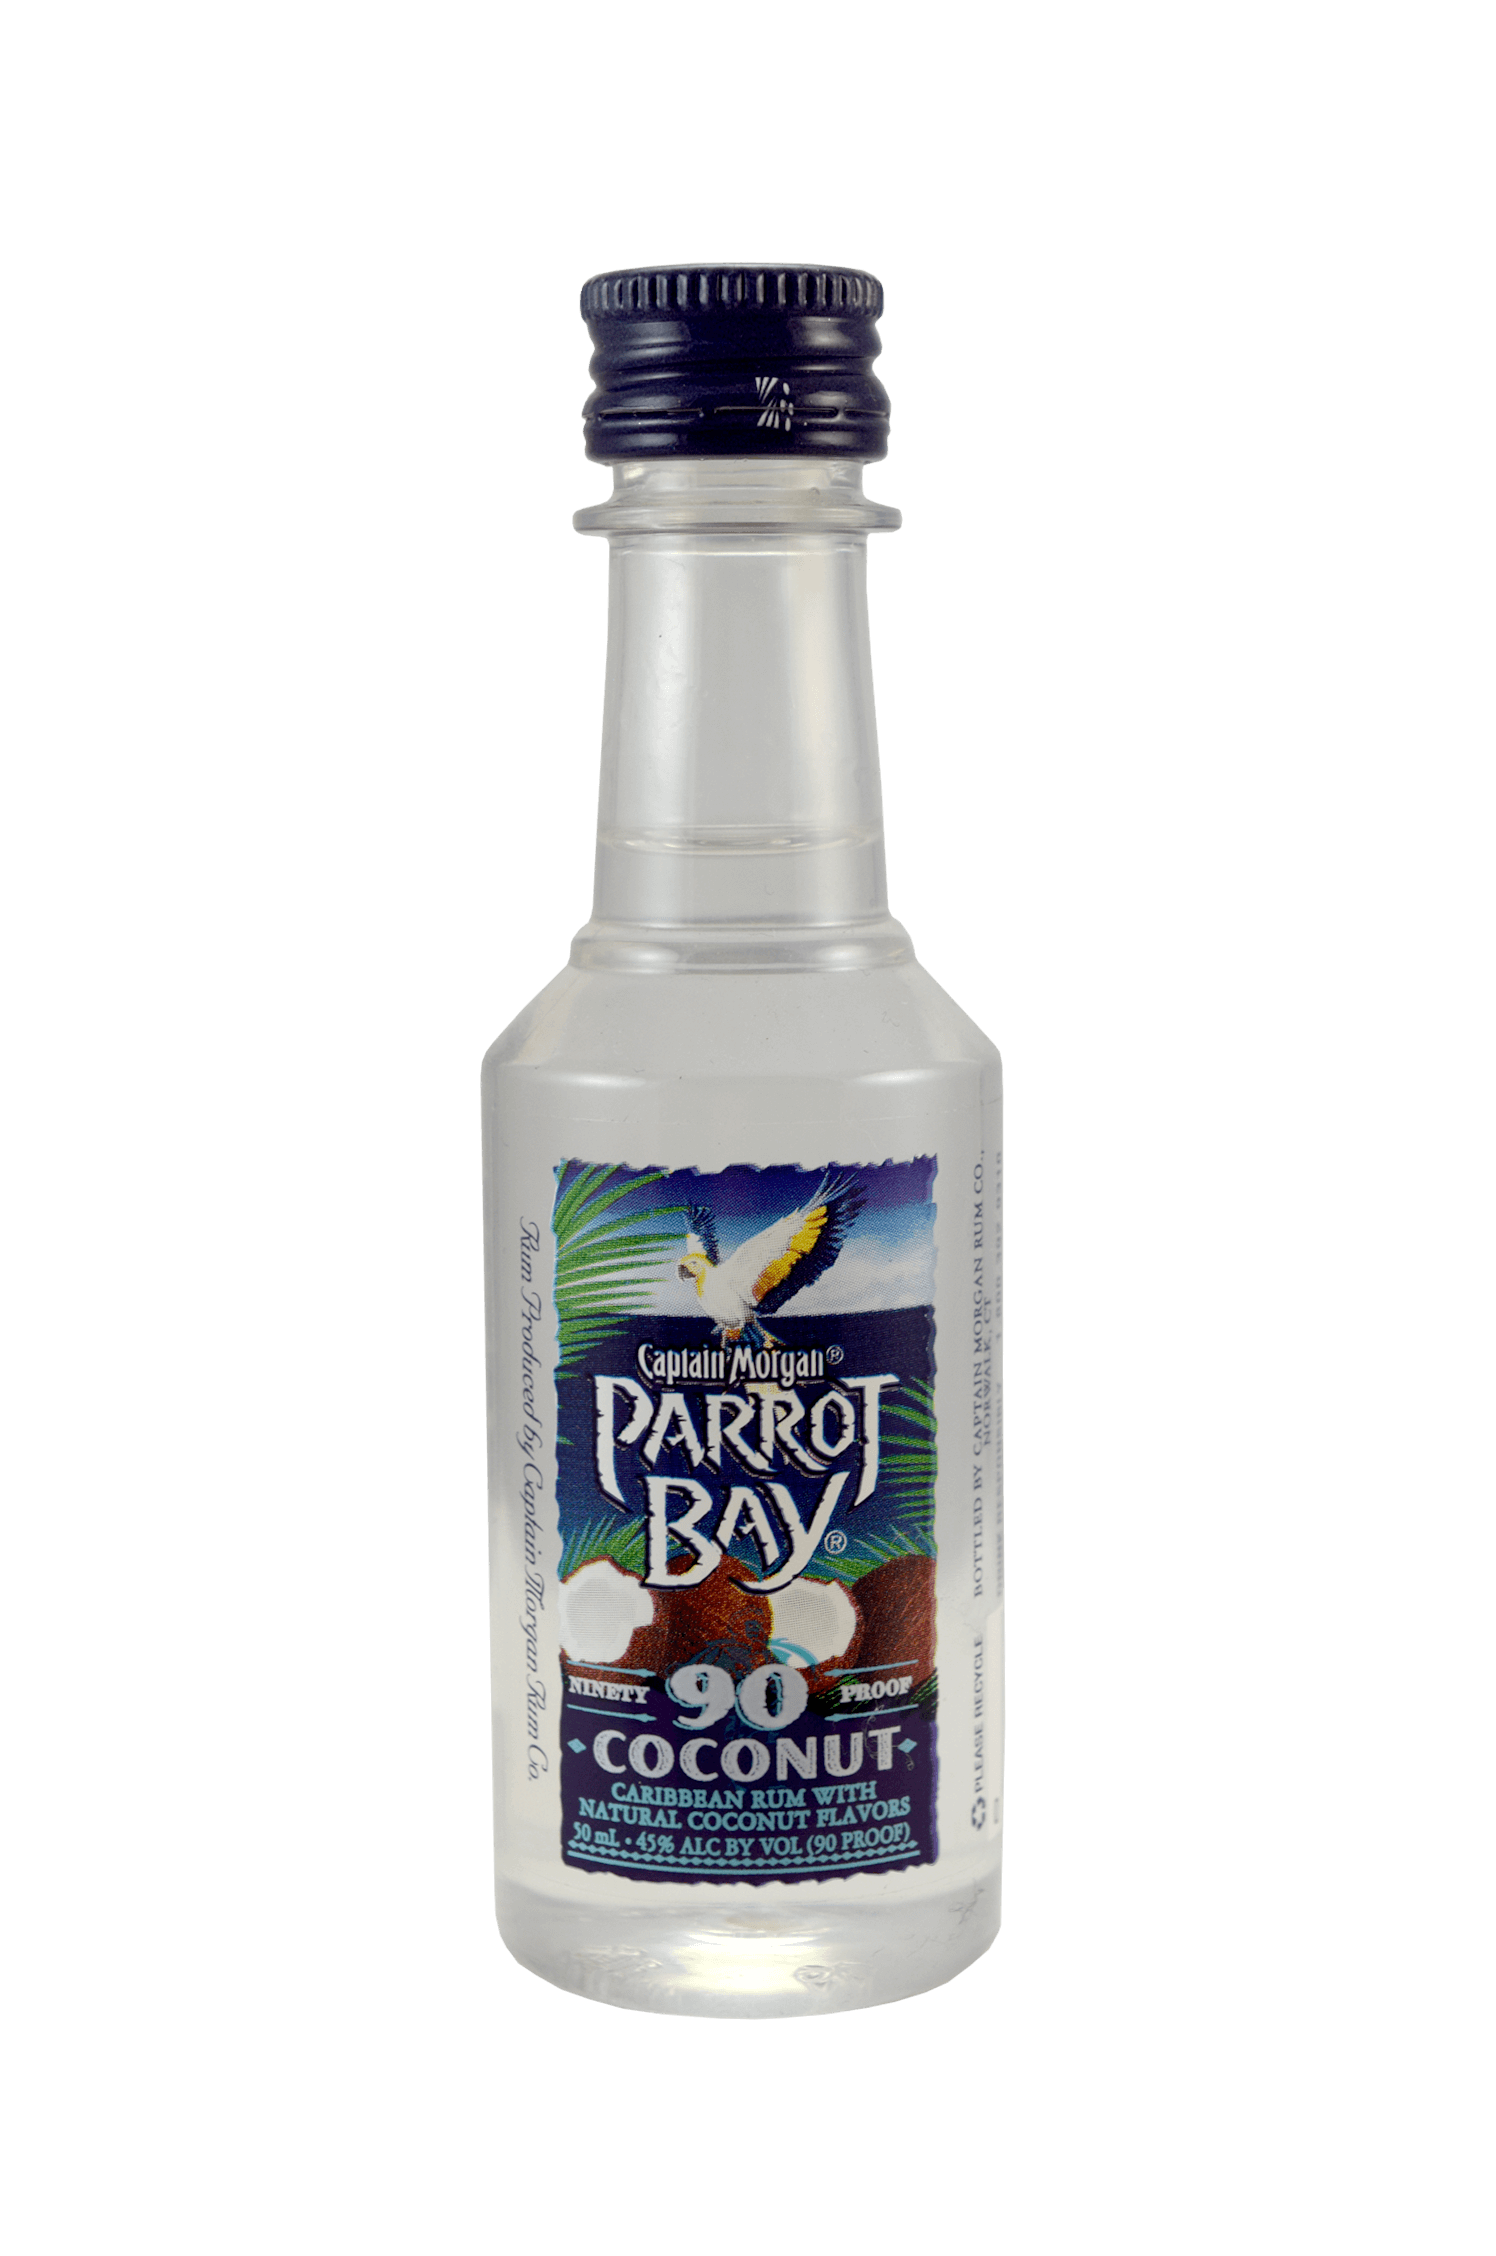 Captain Morgan Parrot Bay Coconut